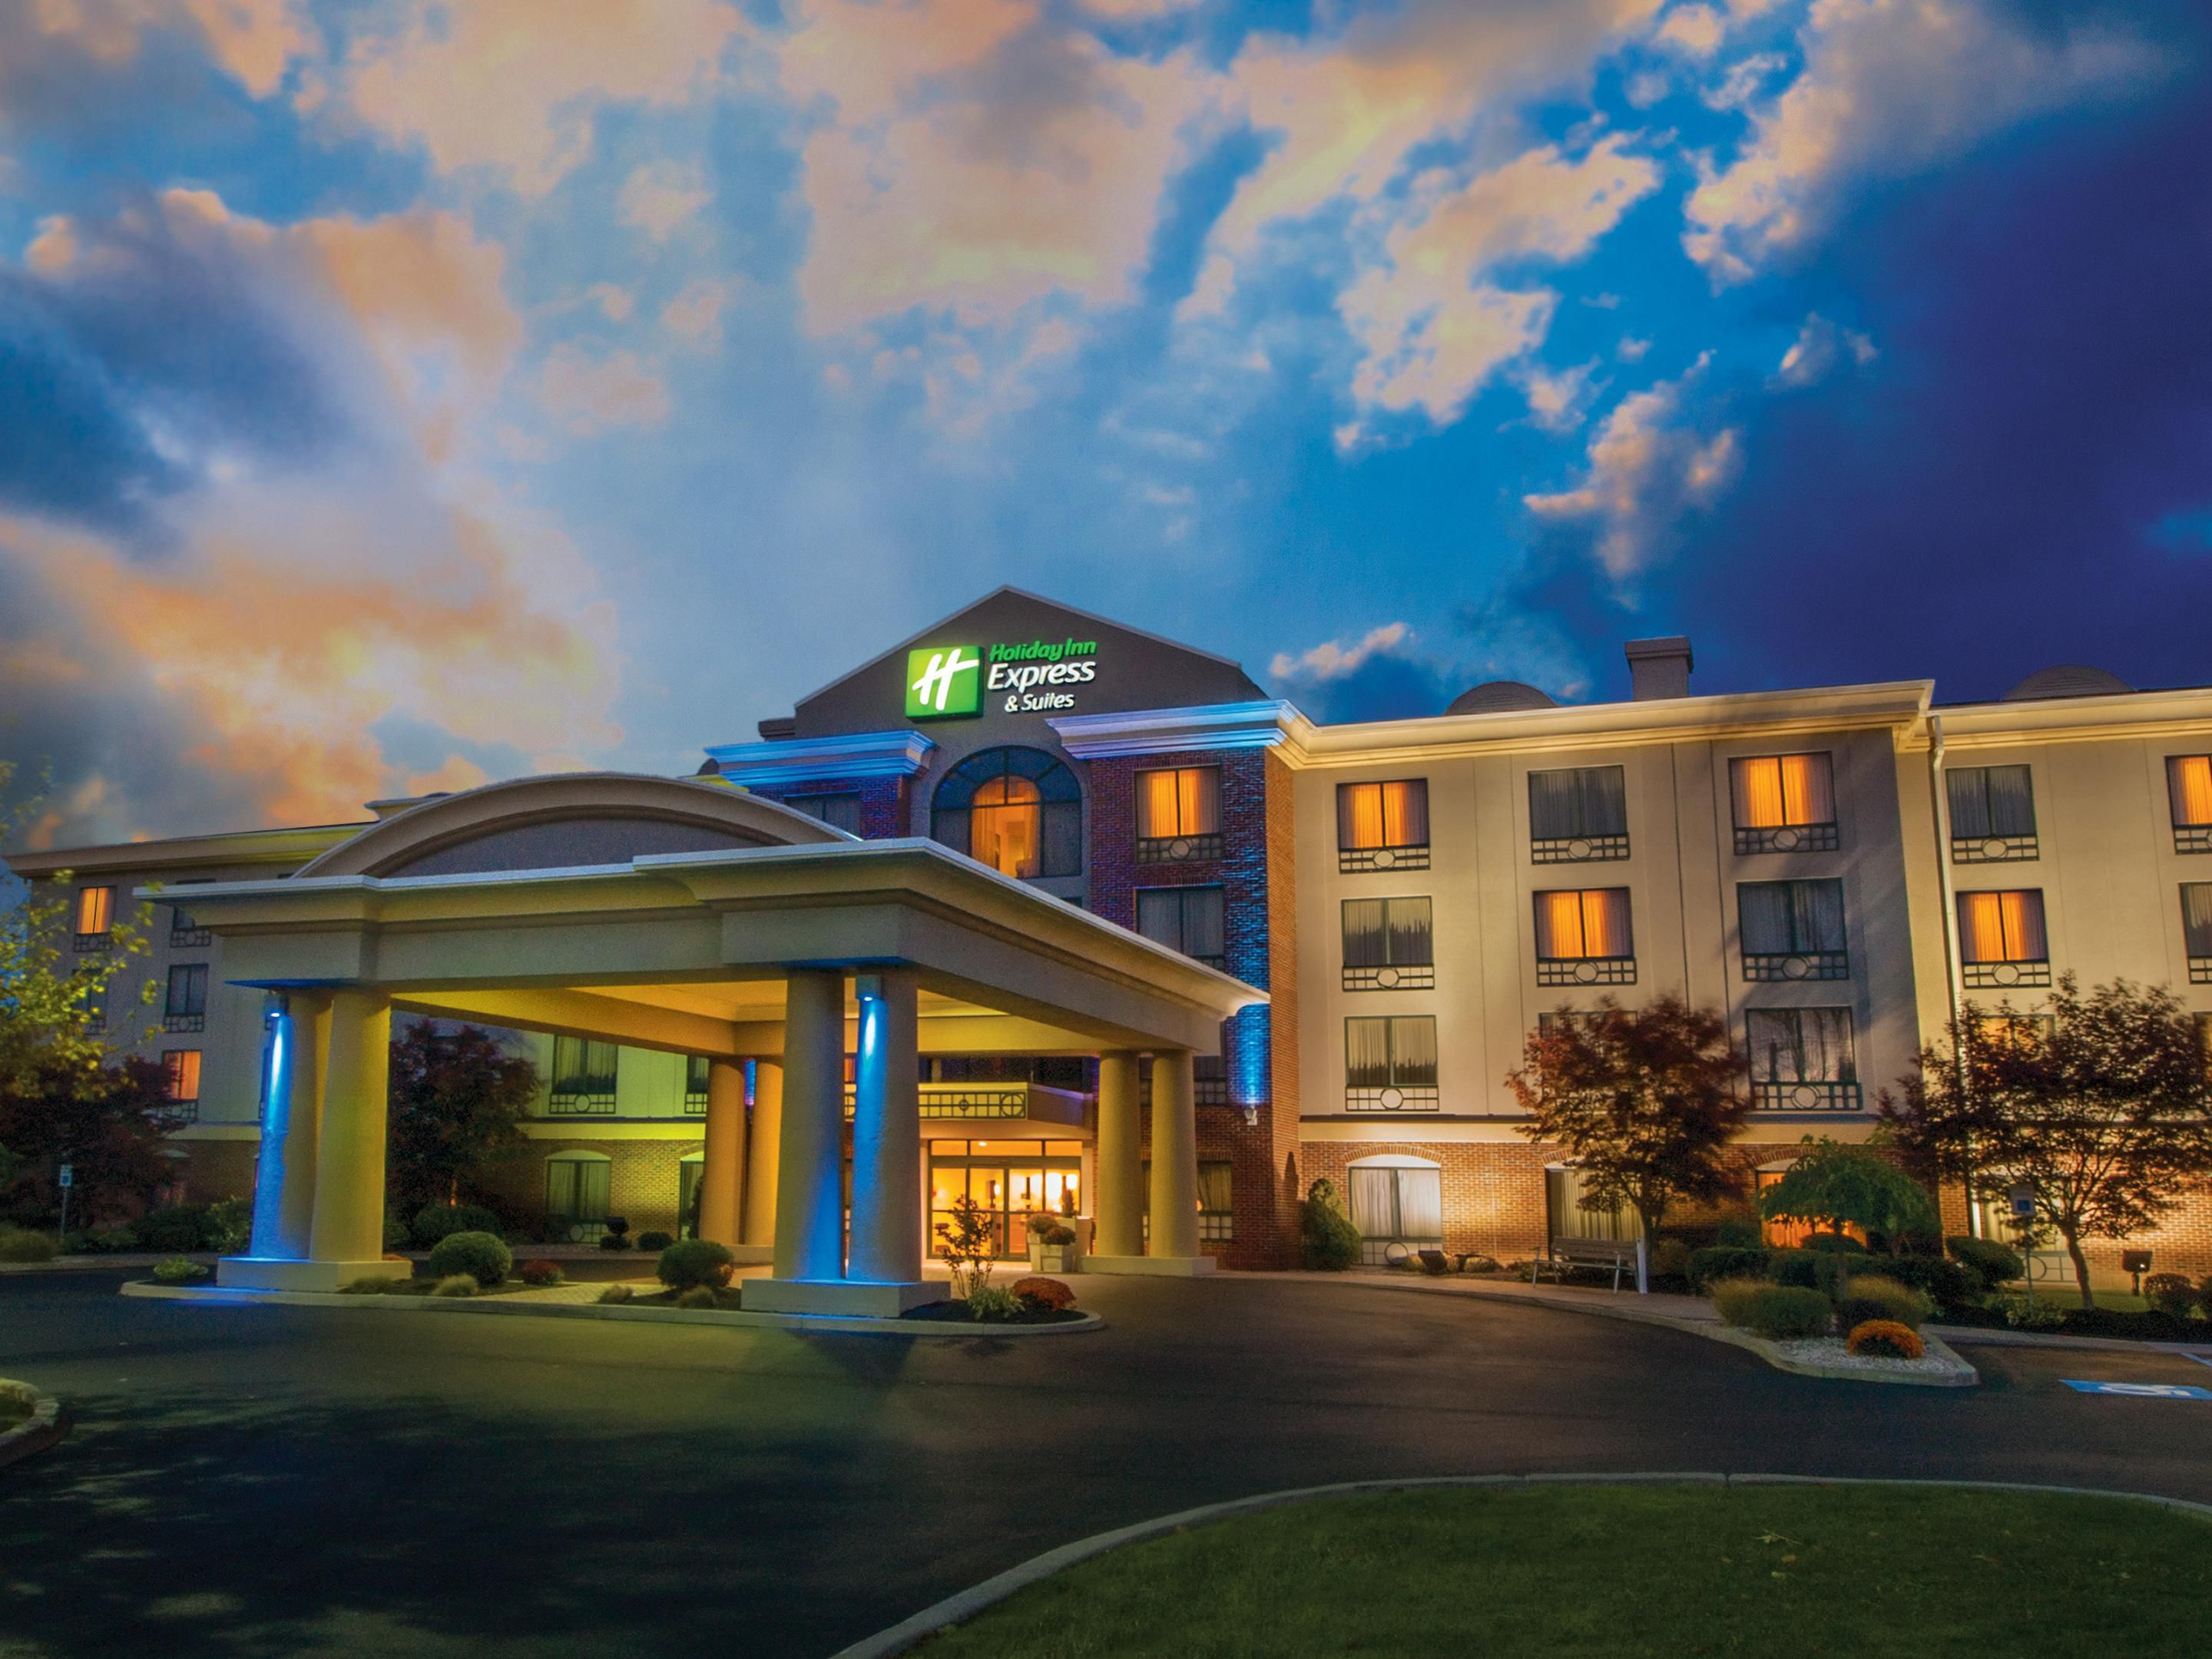 Welcome to the Holiday Inn Express Buffalo Airport.